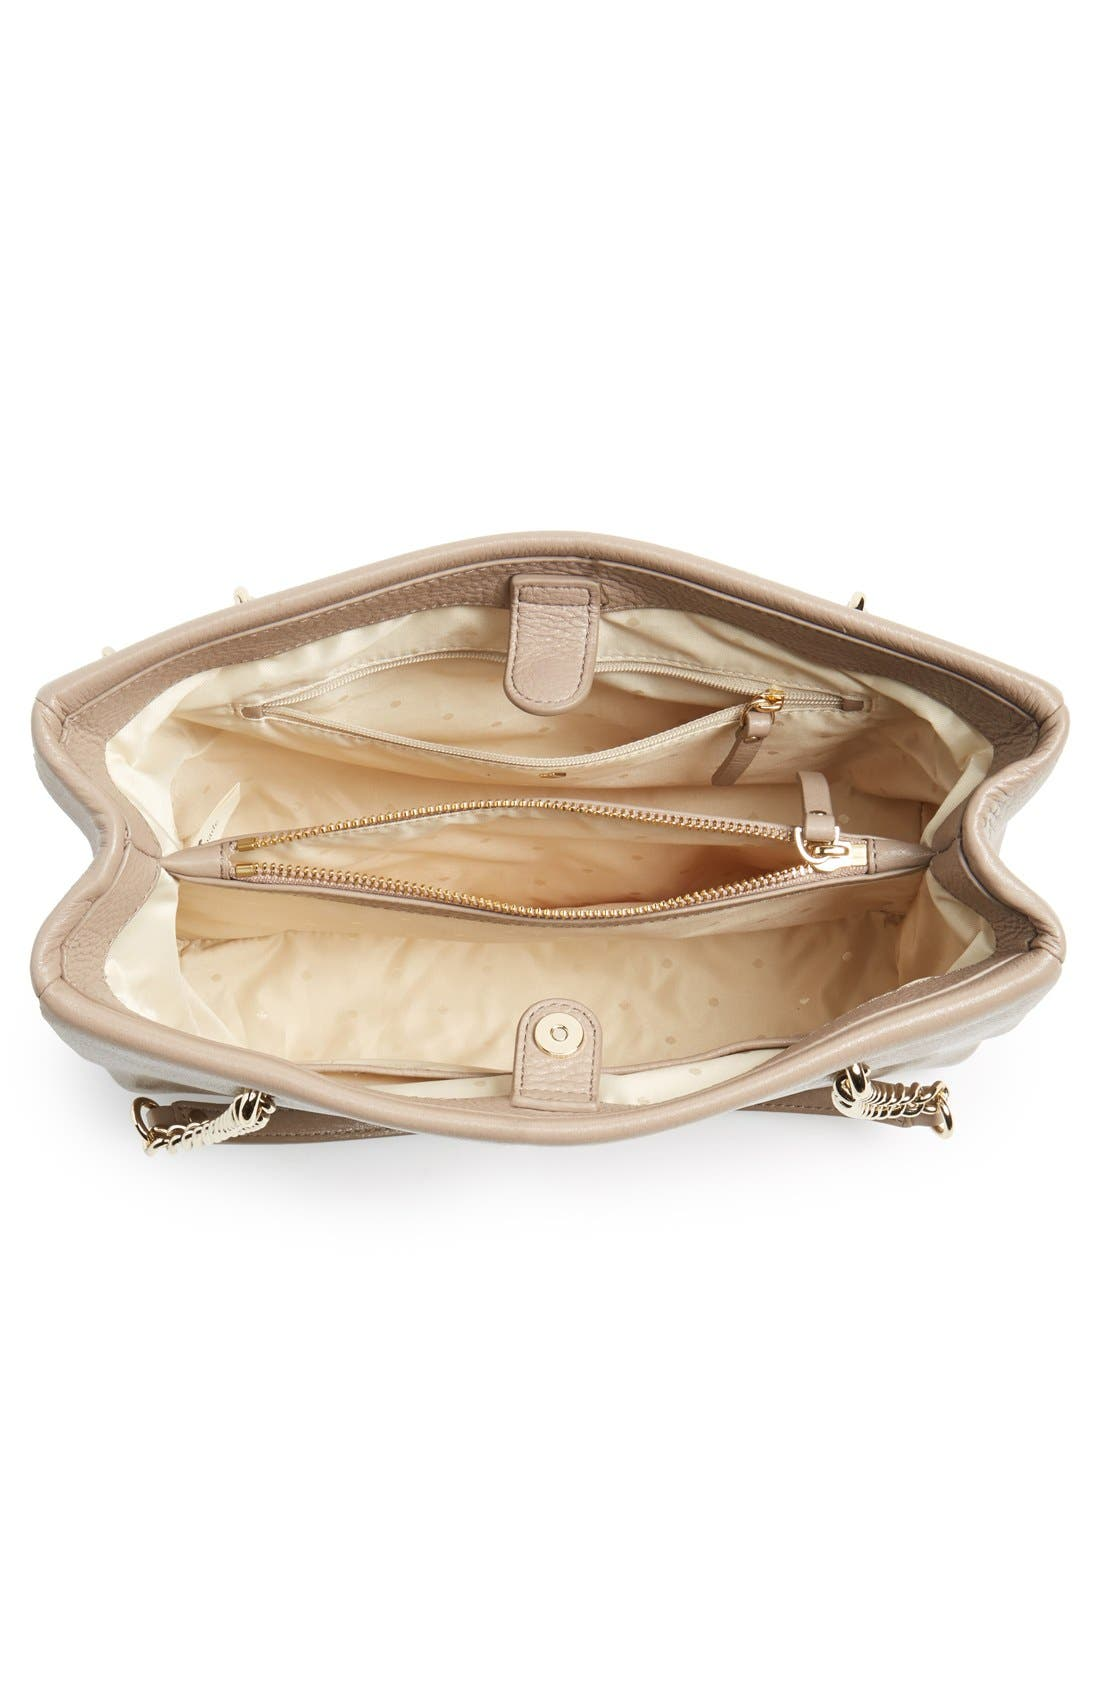 Alternate Image 3  - kate spade new york 'emerson place - small phoebe' leather shoulder bag